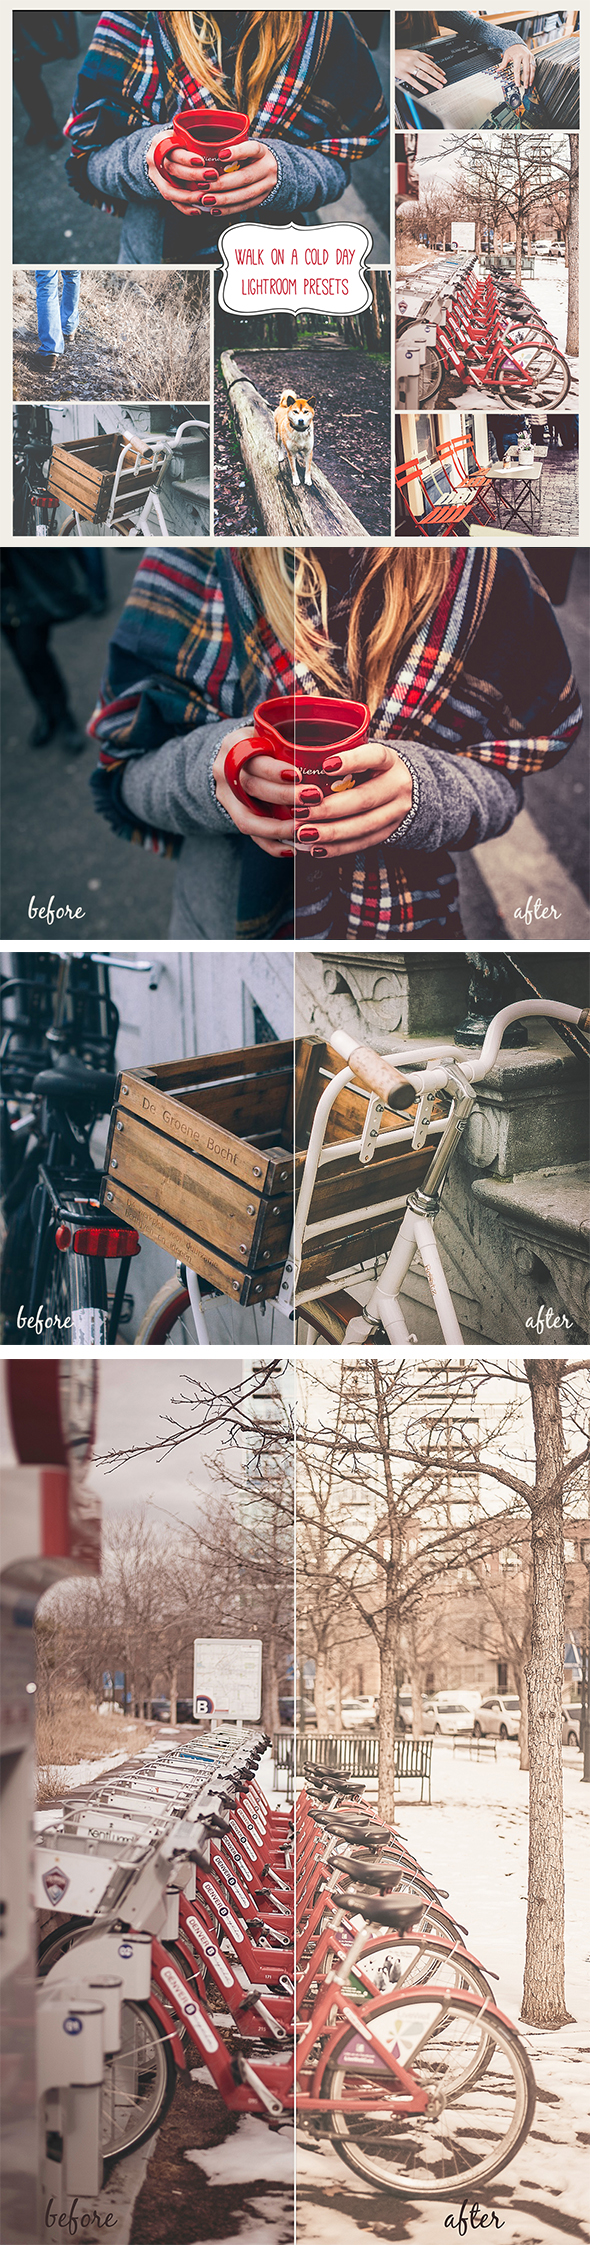 GraphicRiver 20 Walk on a cold day Lightroom Presets 21103148